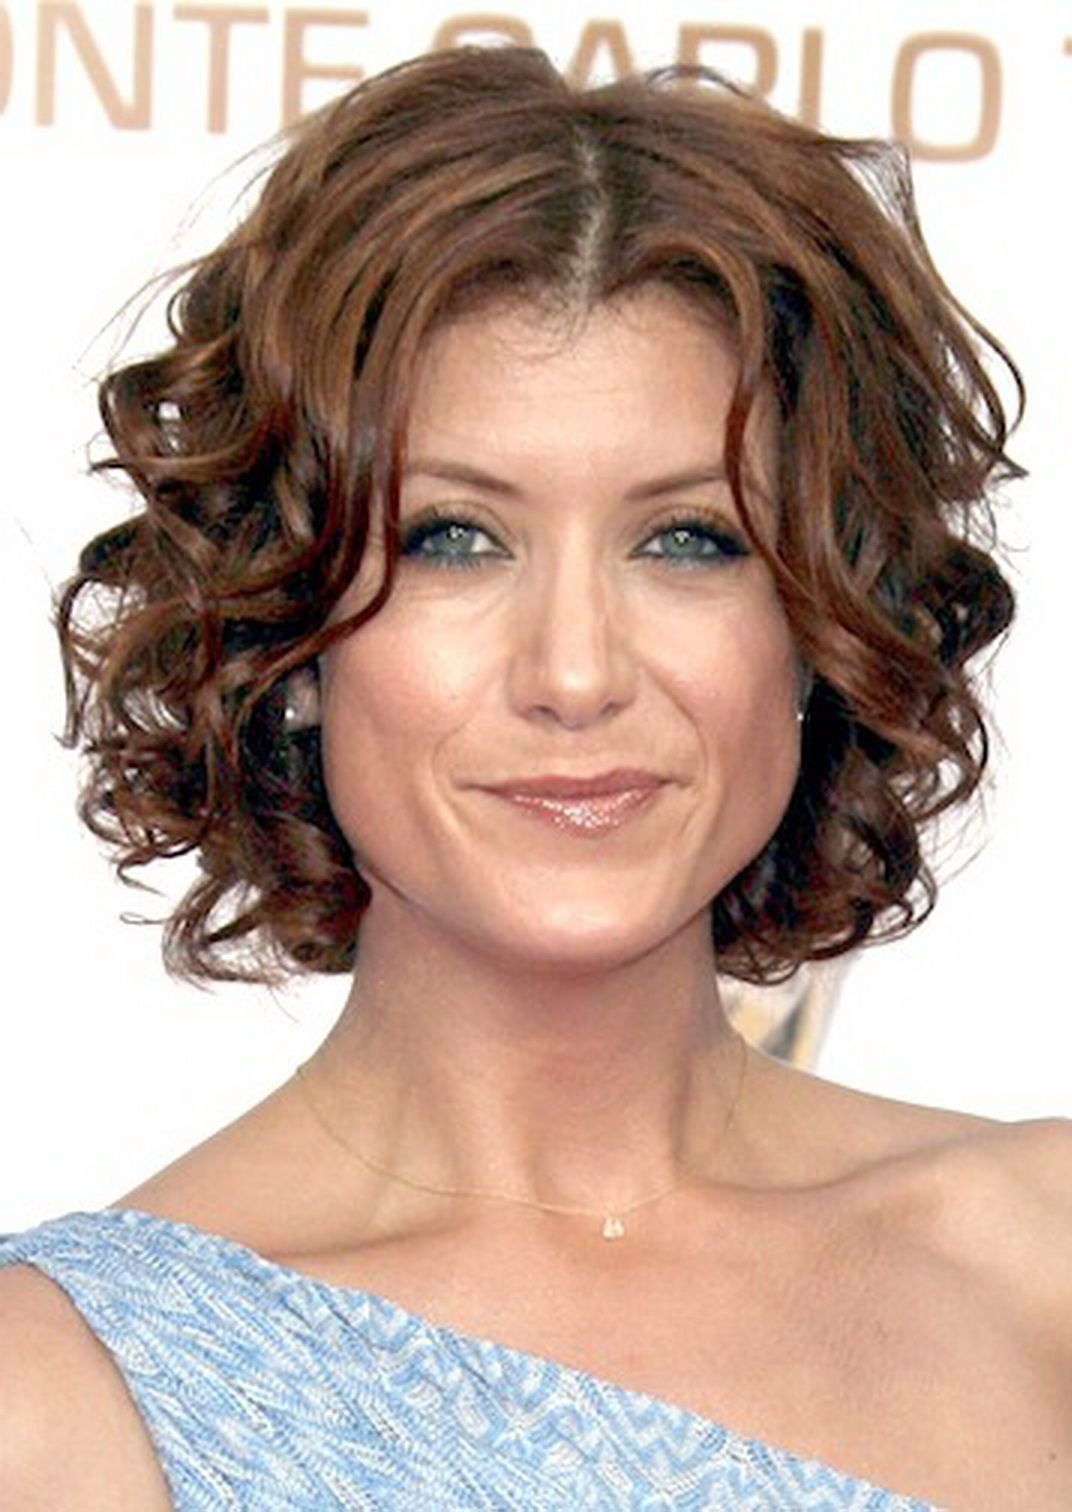 Trendy Short Curly Hairstyles For Women : Hairstyles Ideas For Regarding Trendy Short Curly Haircuts (View 19 of 25)